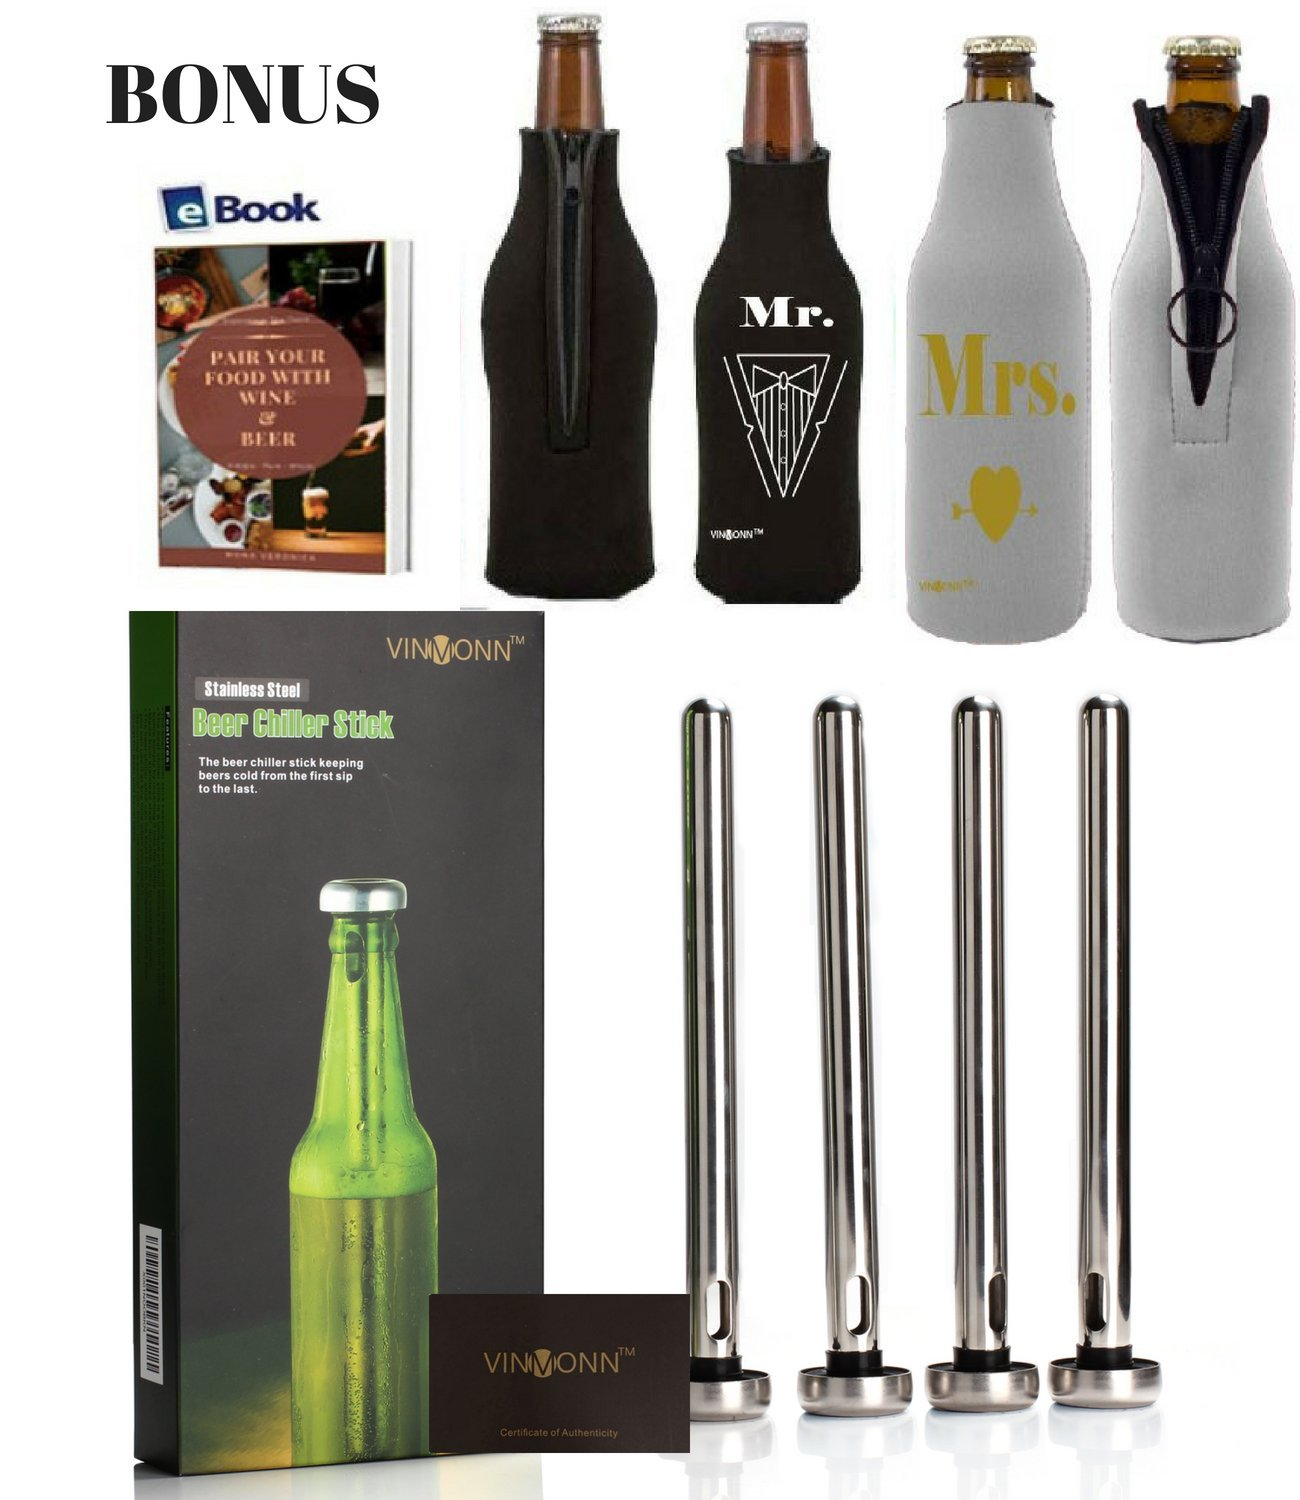 4 Beer Chiller Stick 2 Mr and Mrs Neoprene Insulated Beer Bottle Sleeve : Keep Beer Cold Longer :: Stainless Steel Beer Cooling Sticks